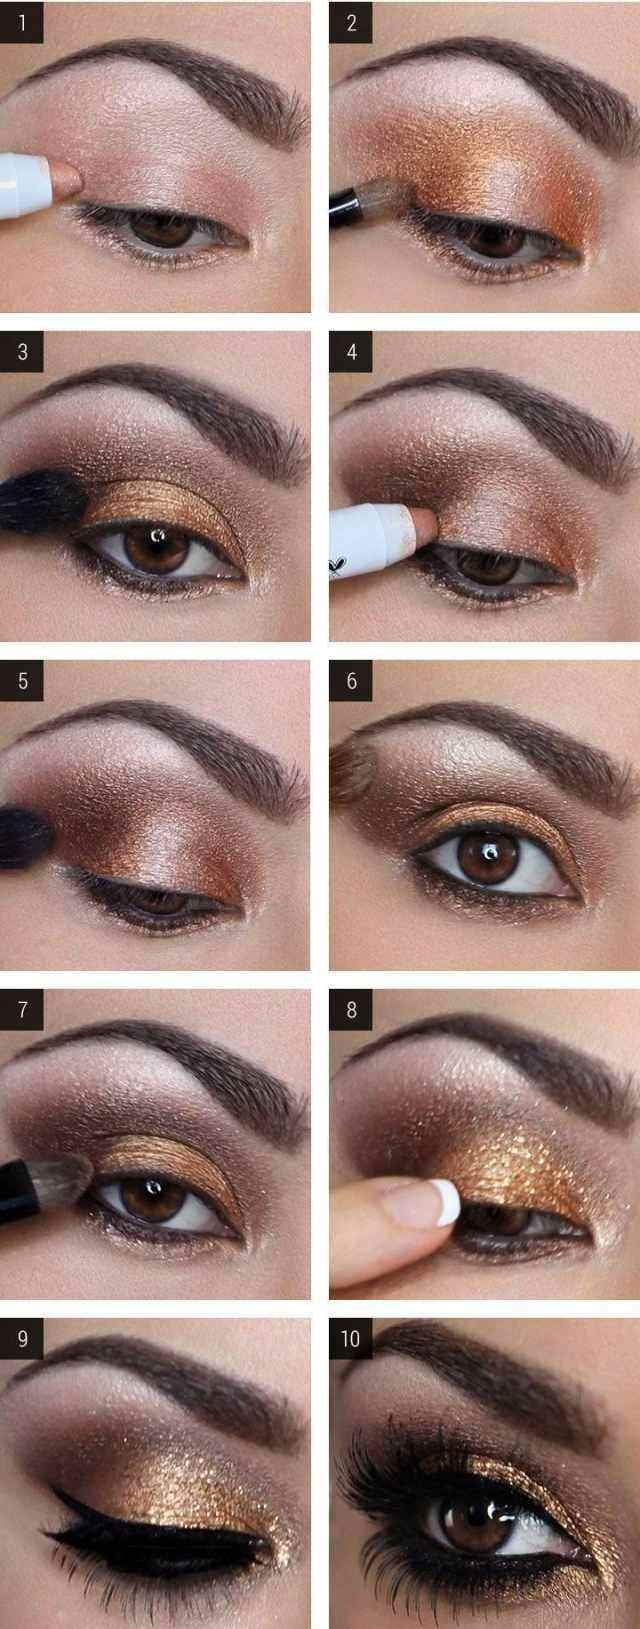 Tuto Maquillage Soiree Yeux Marrons